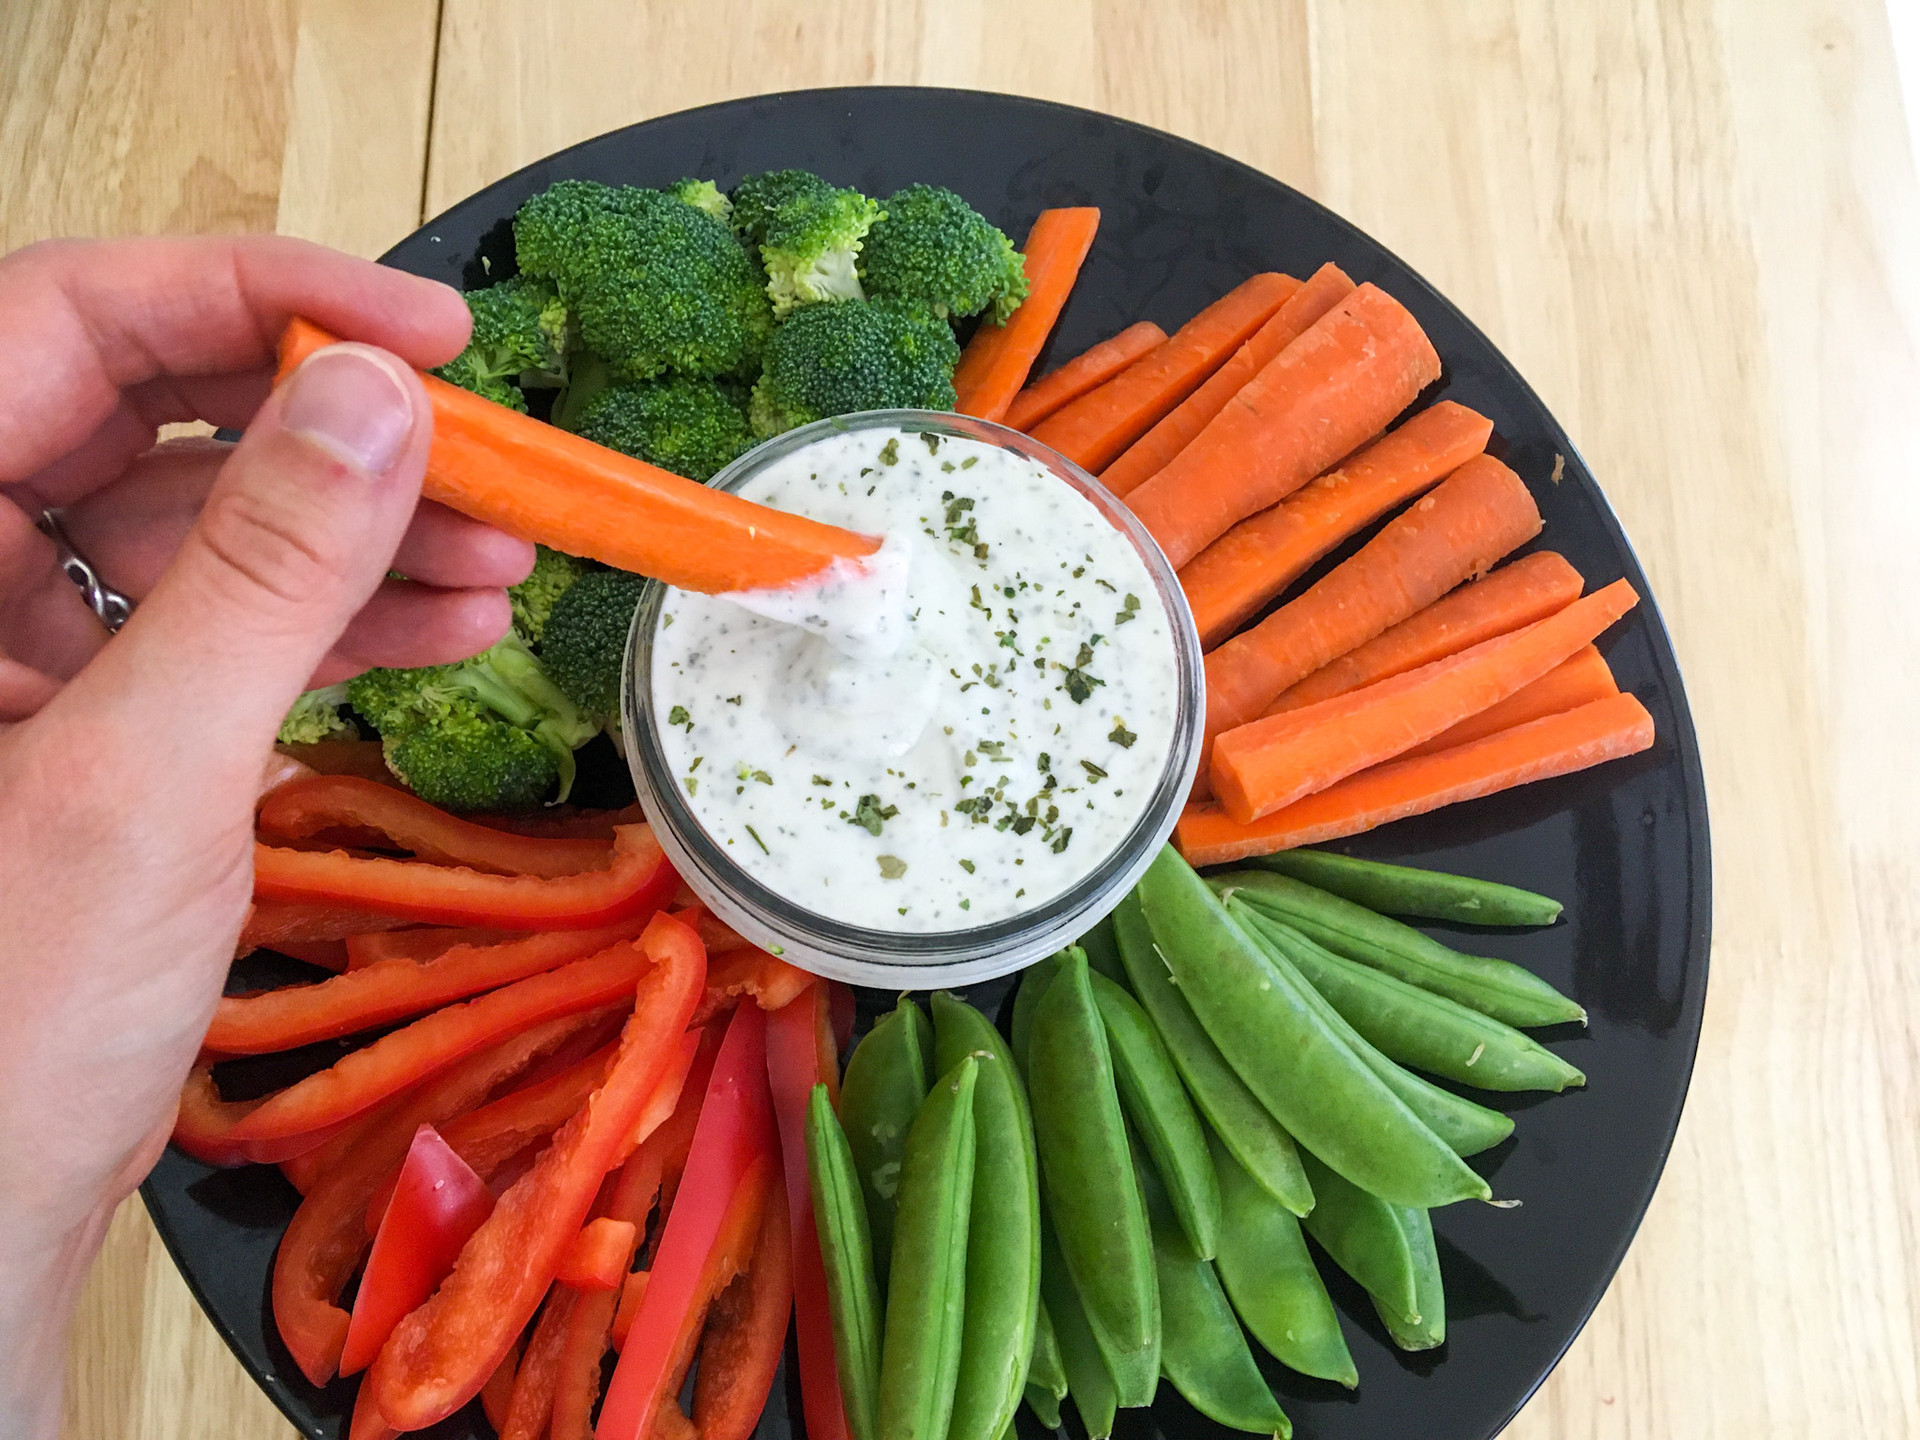 Peas, Carrots, Bell Peppers, Broccoli, Greek Yogurt, Parsley, Ranch Dressing, 5 minutes, Preservative Free, Sugar Free, Gluten Free, Healthy Sides, Quick and Easy Recipes